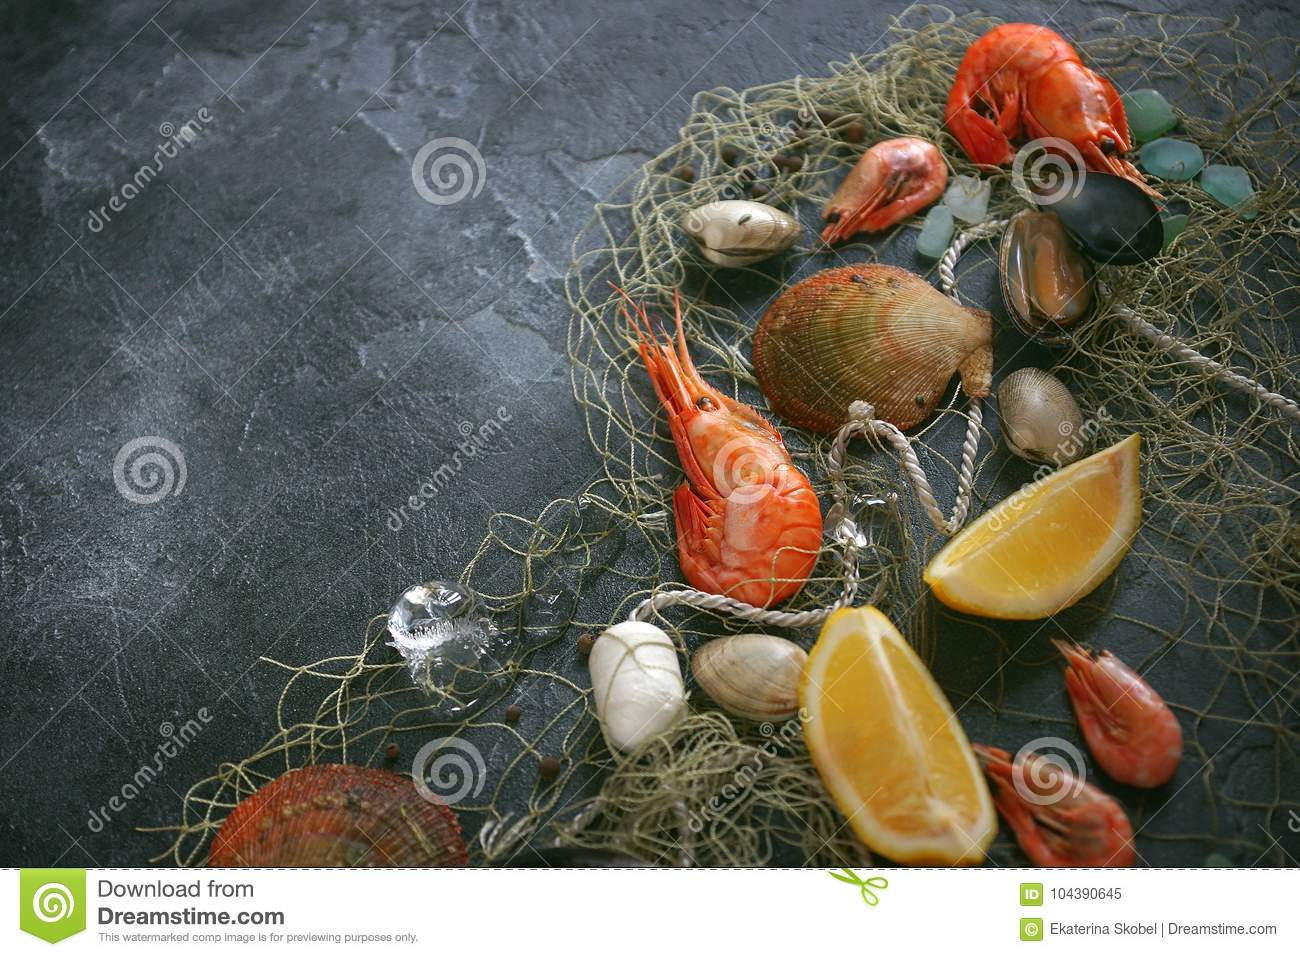 Seafood on a dark background, Shrimps, mussels, mussels on black stone, Copy space